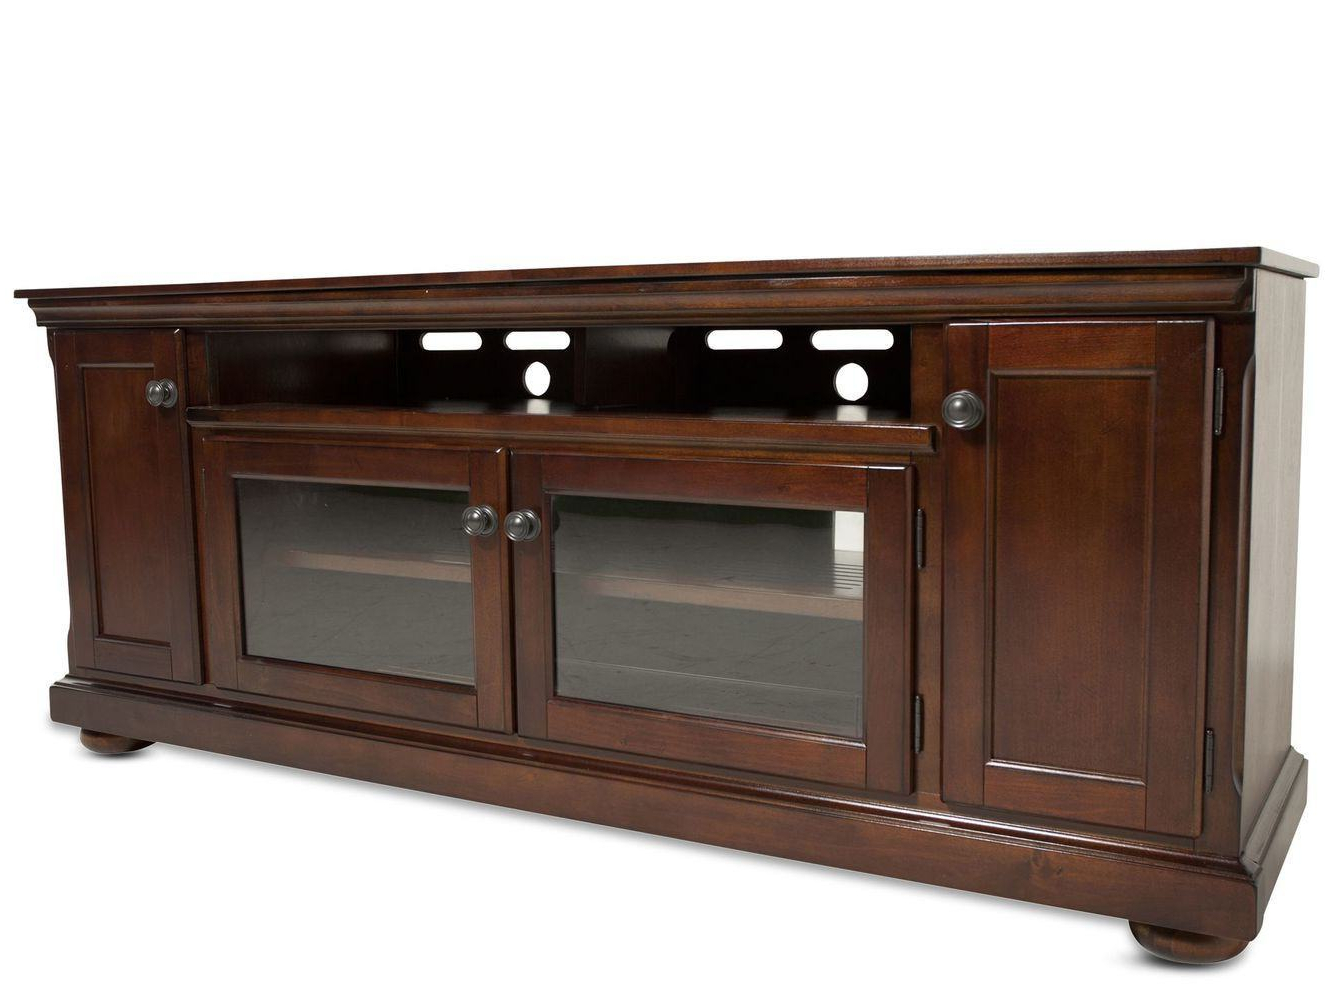 Simple 72 Inch Tv Stand 72 Inch Tv Stand | Cakestandlady Pertaining To Walton 72 Inch Tv Stands (View 5 of 20)